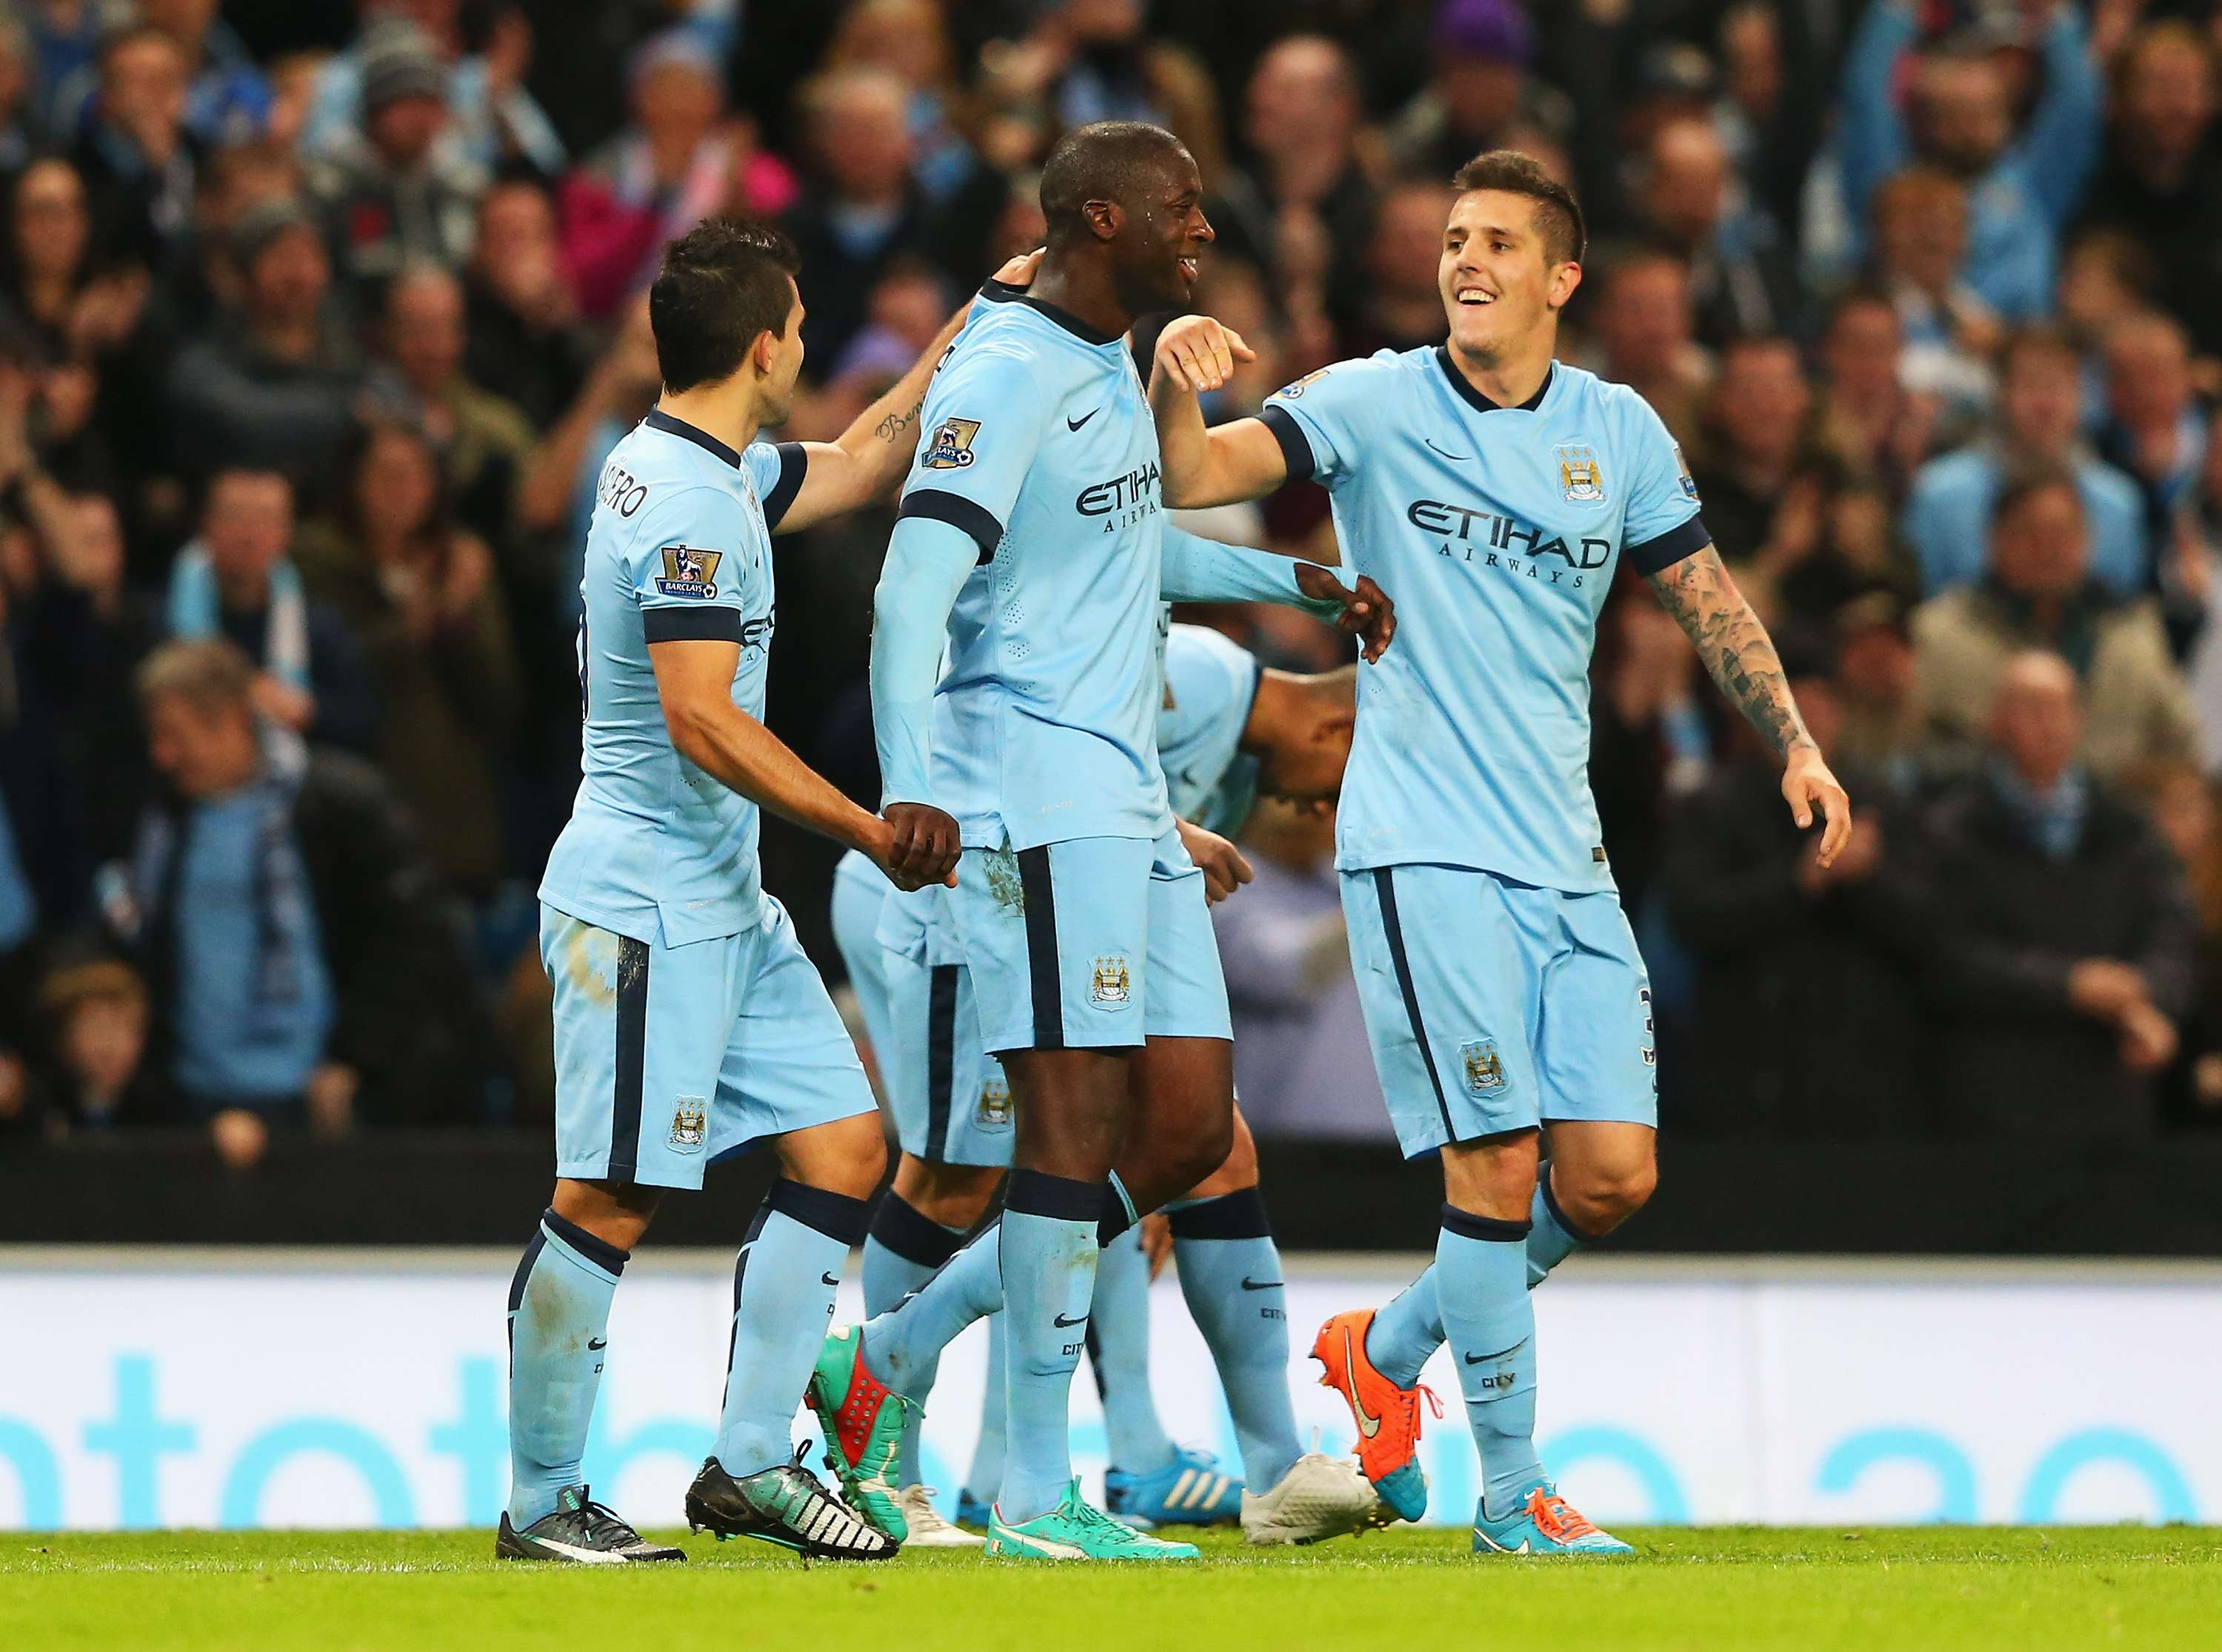 City faz festa com gol ante Swansea Foto: Alex Livesey/Getty Images